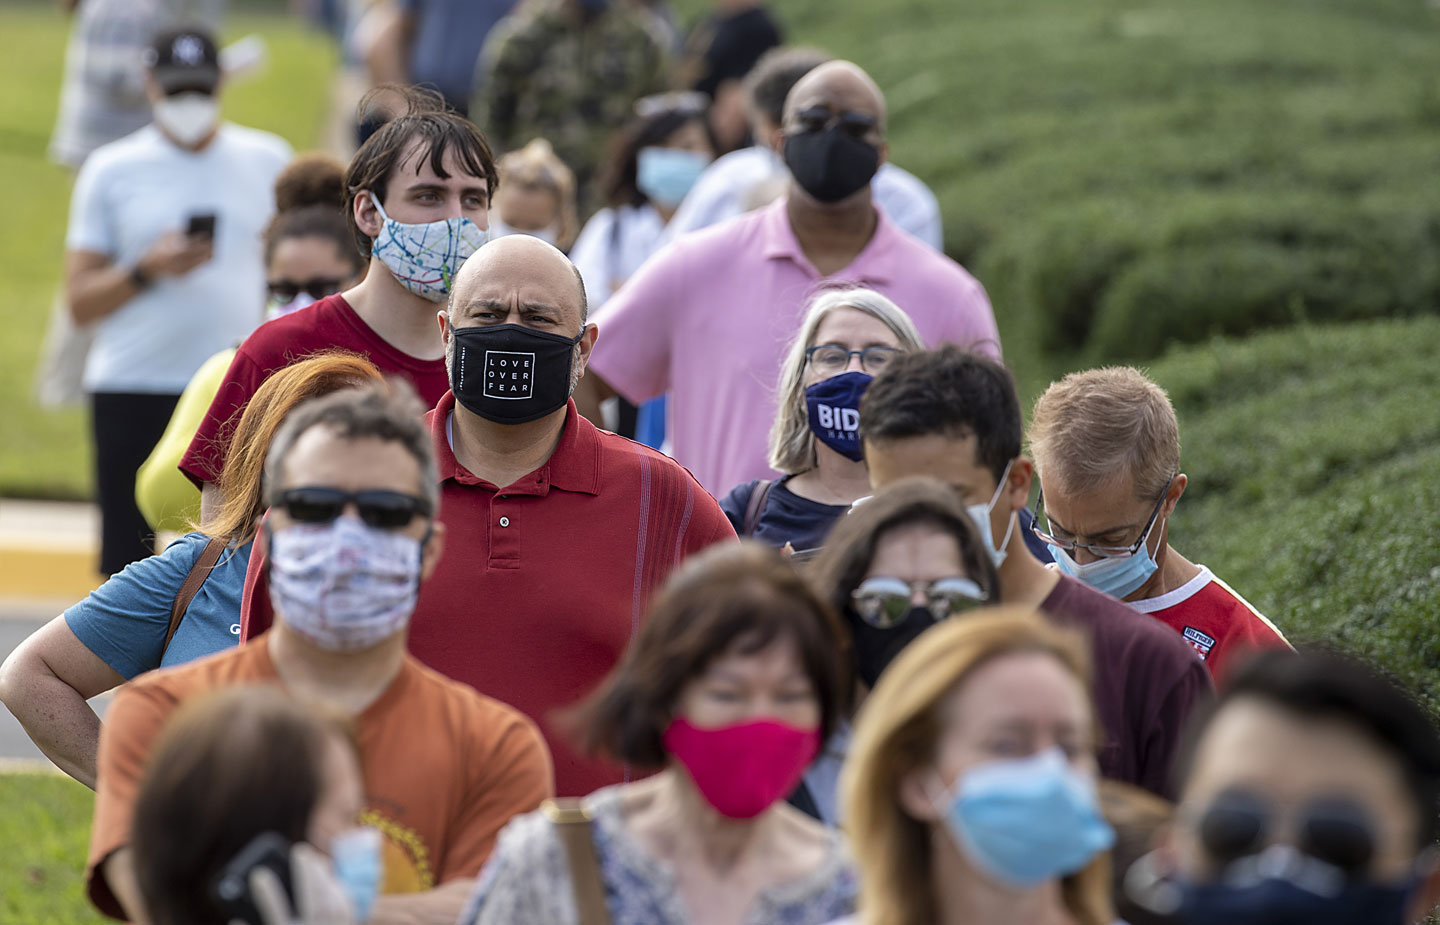 Image of people waiting in line to vote wearing masks